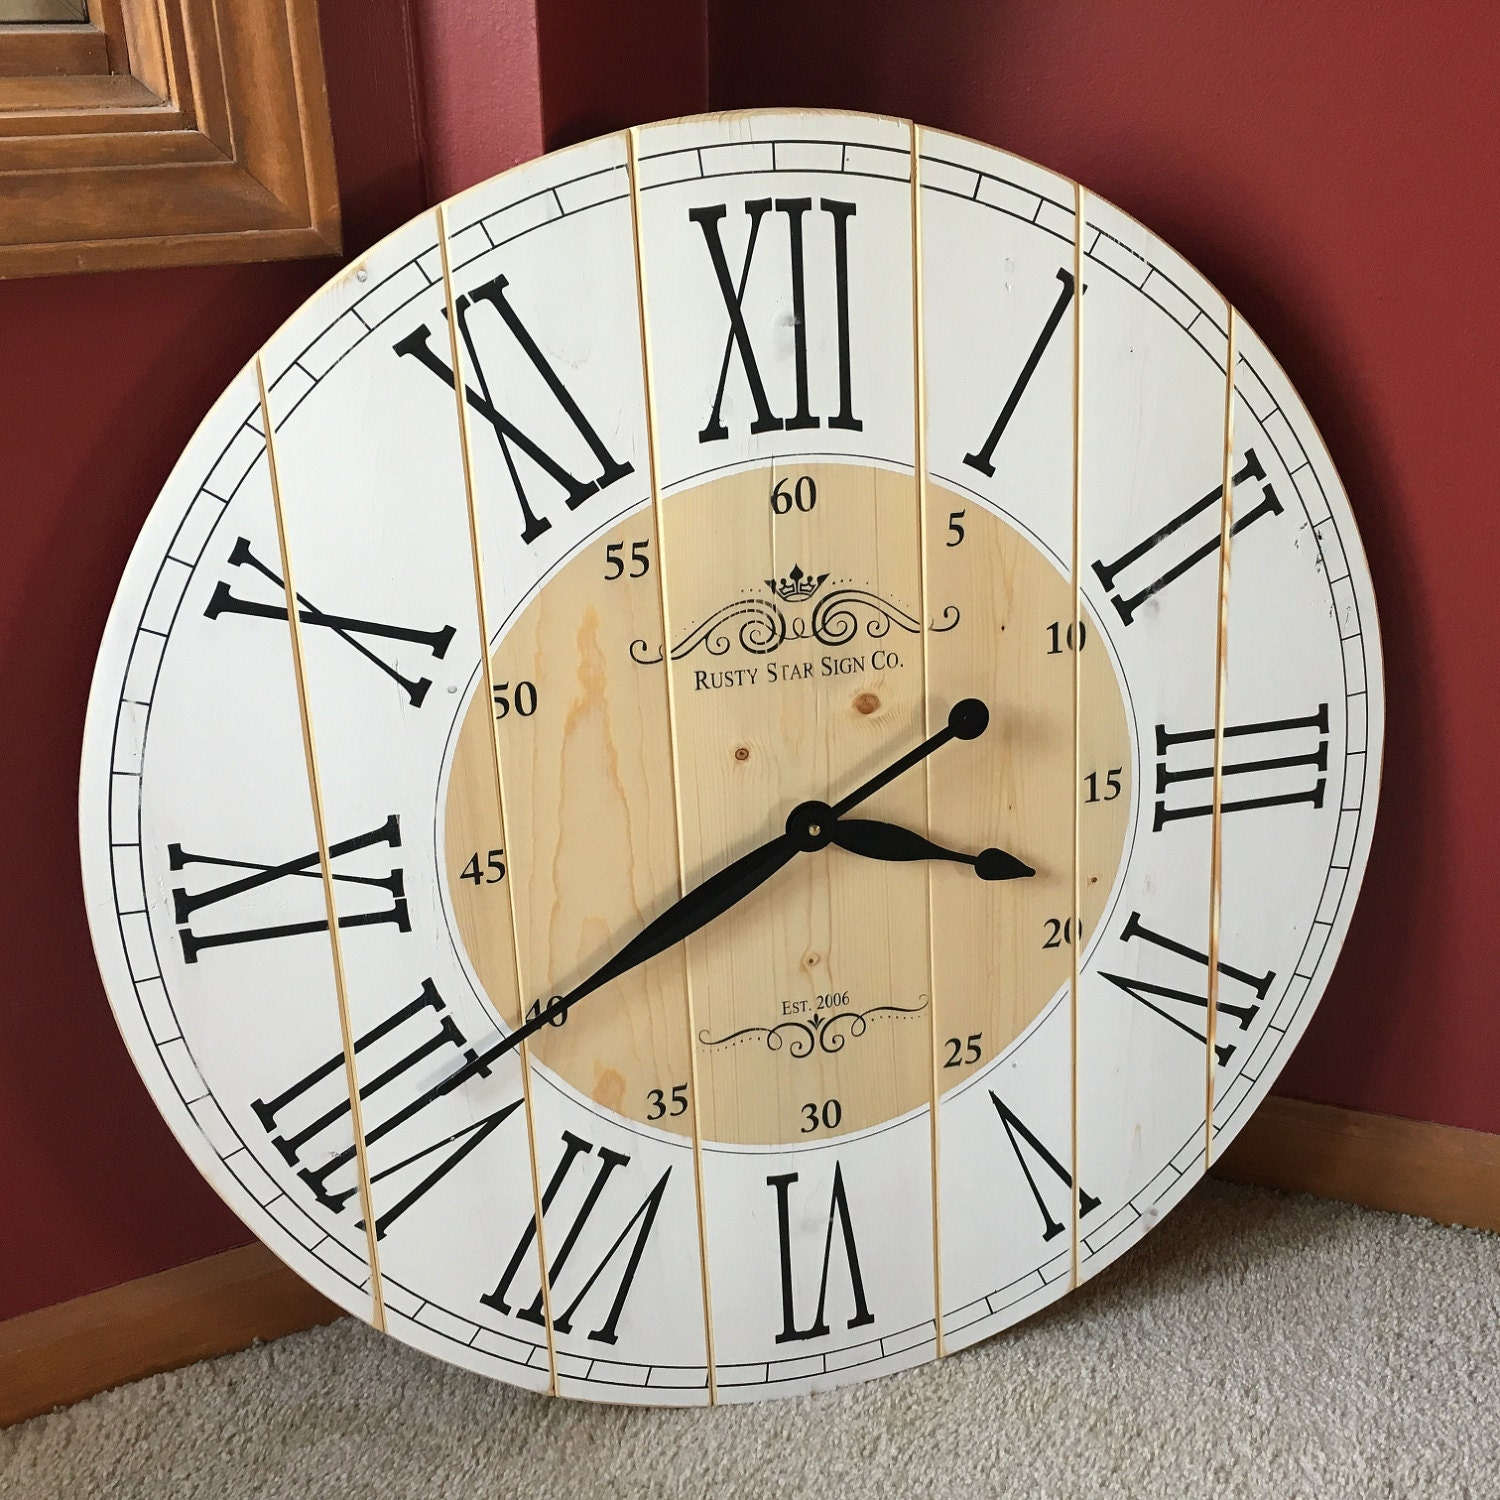 28 Inch Rustic Wall Clock Large Wooden By Rustystarsigncompany